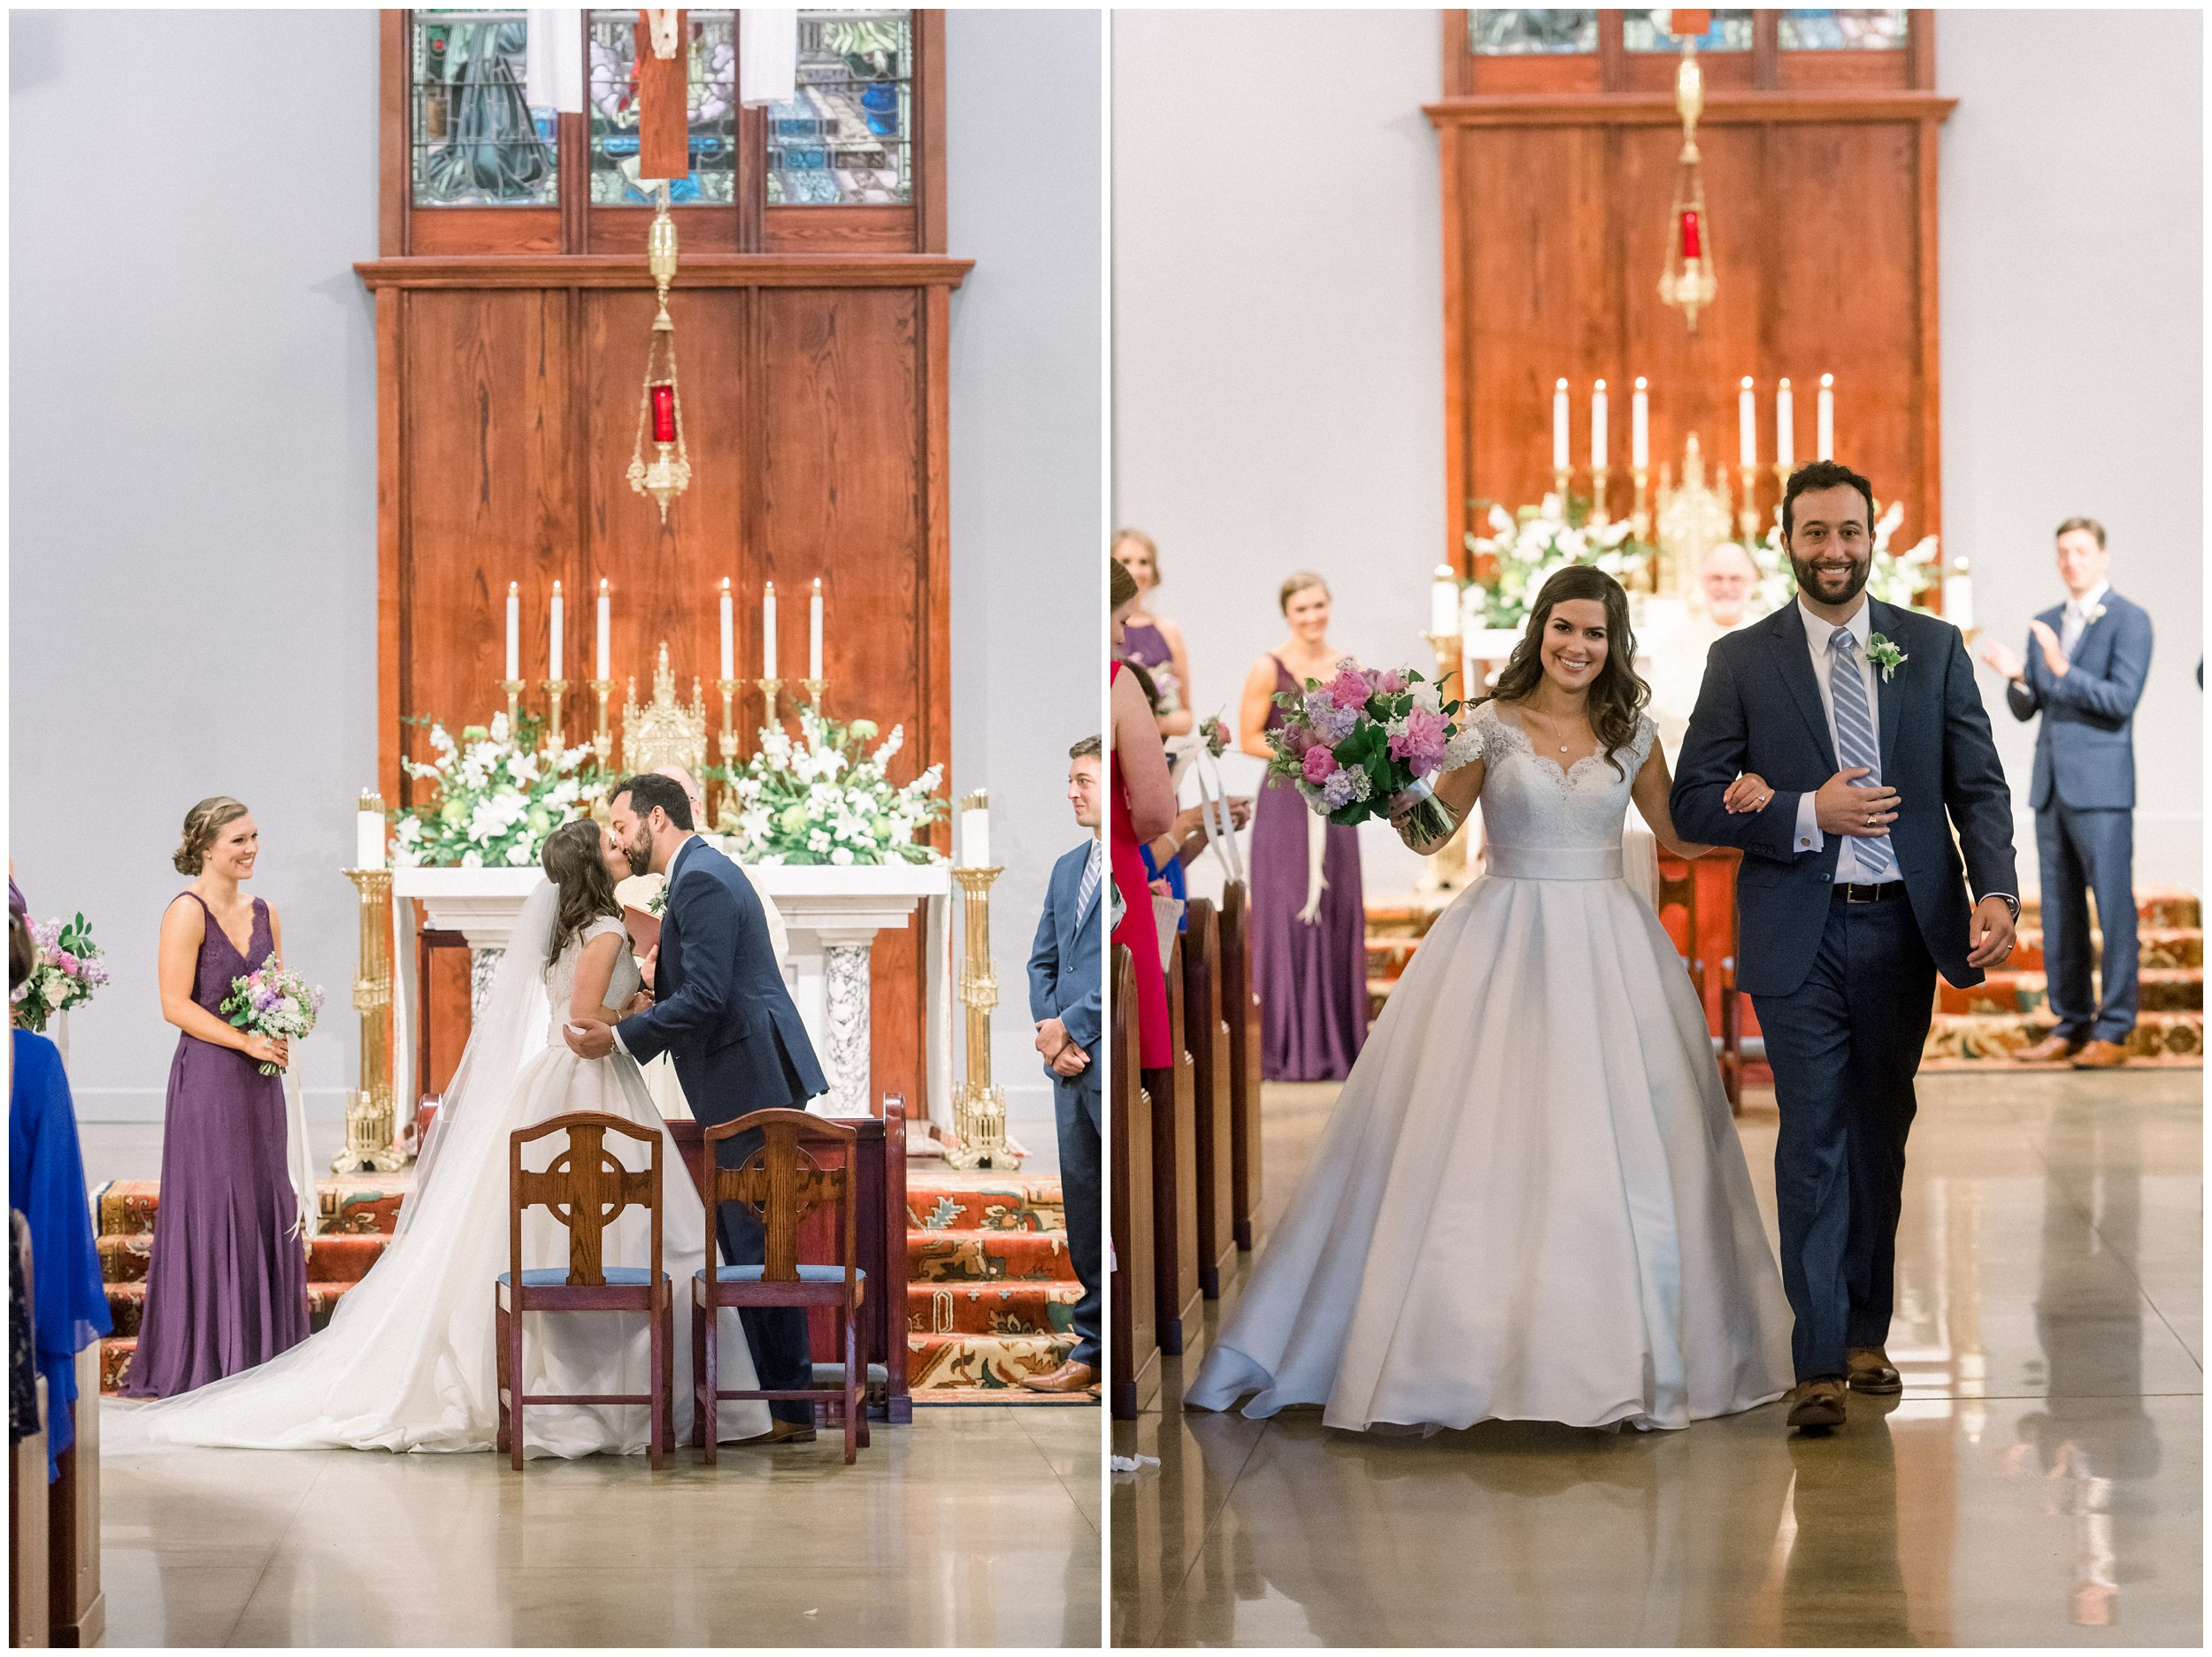 wedding ceremony details, first kiss, leaving the church